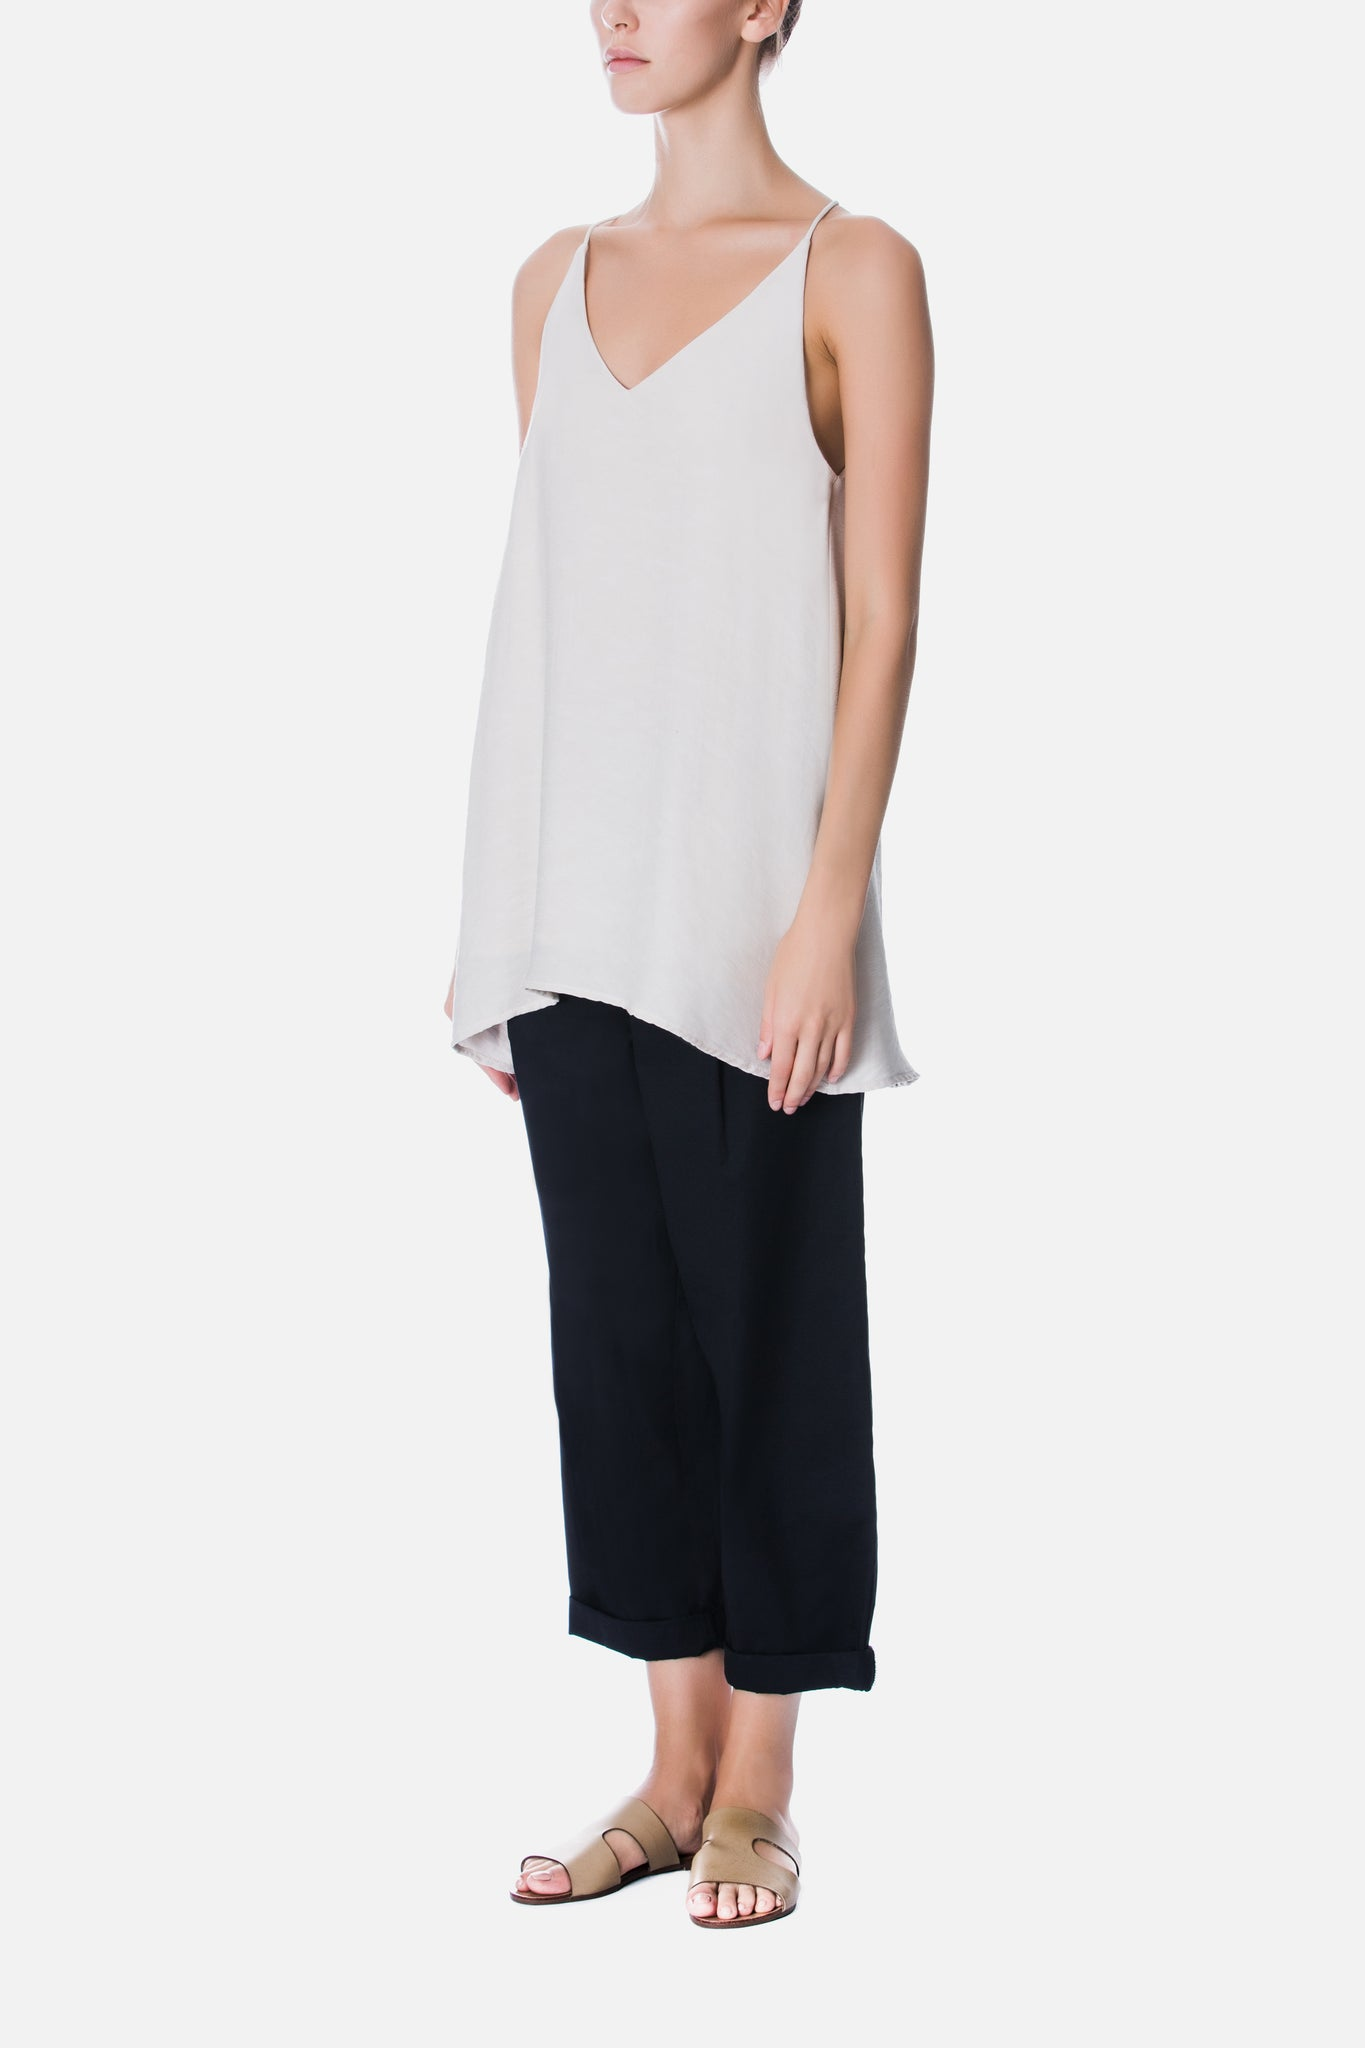 V NECK CAMISOLE TOP